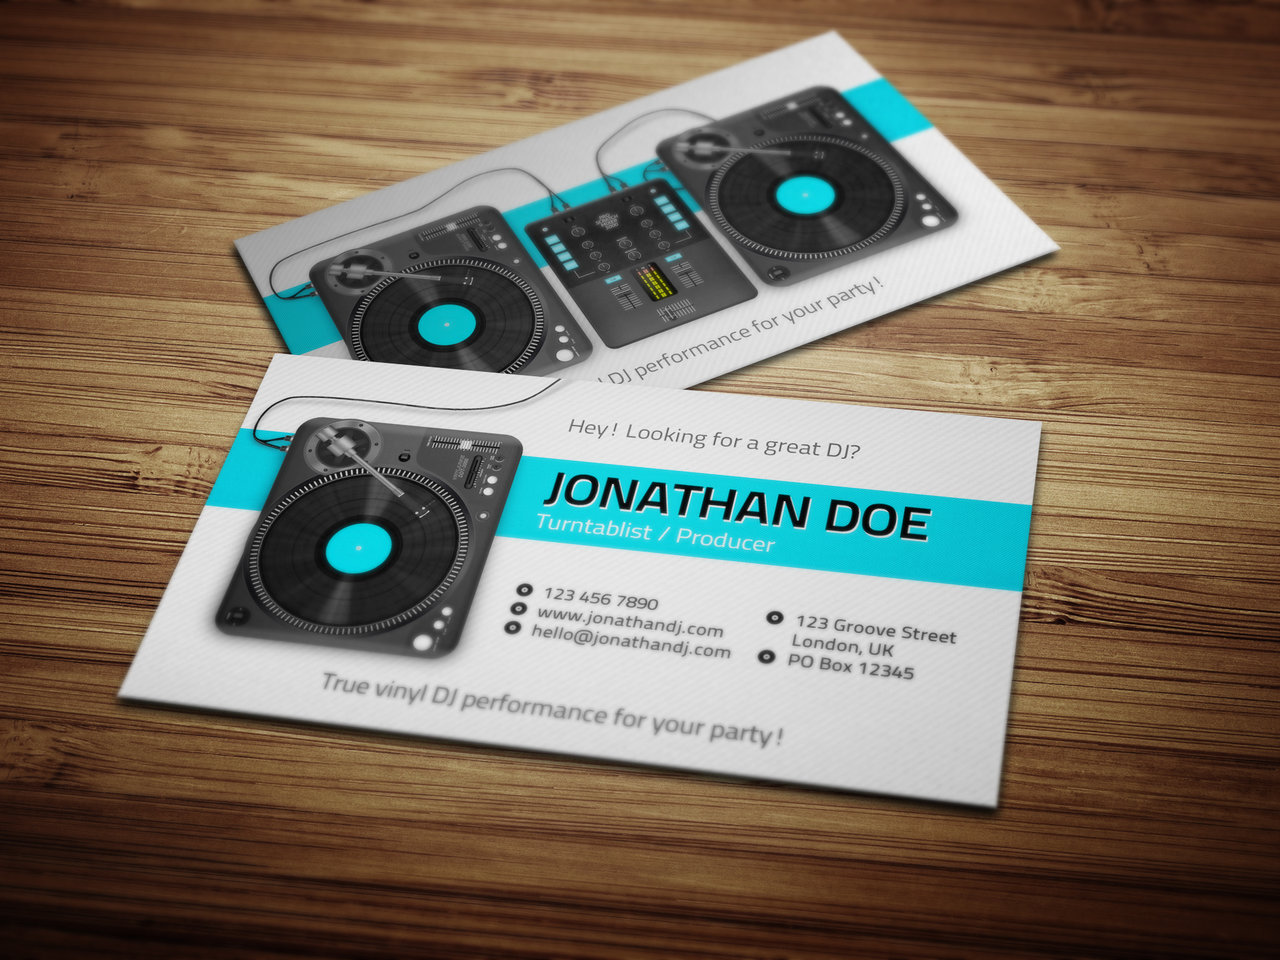 Dj business cards business card tips dj business card template psd free download creative dj business cards free printable dj cheaphphosting Gallery